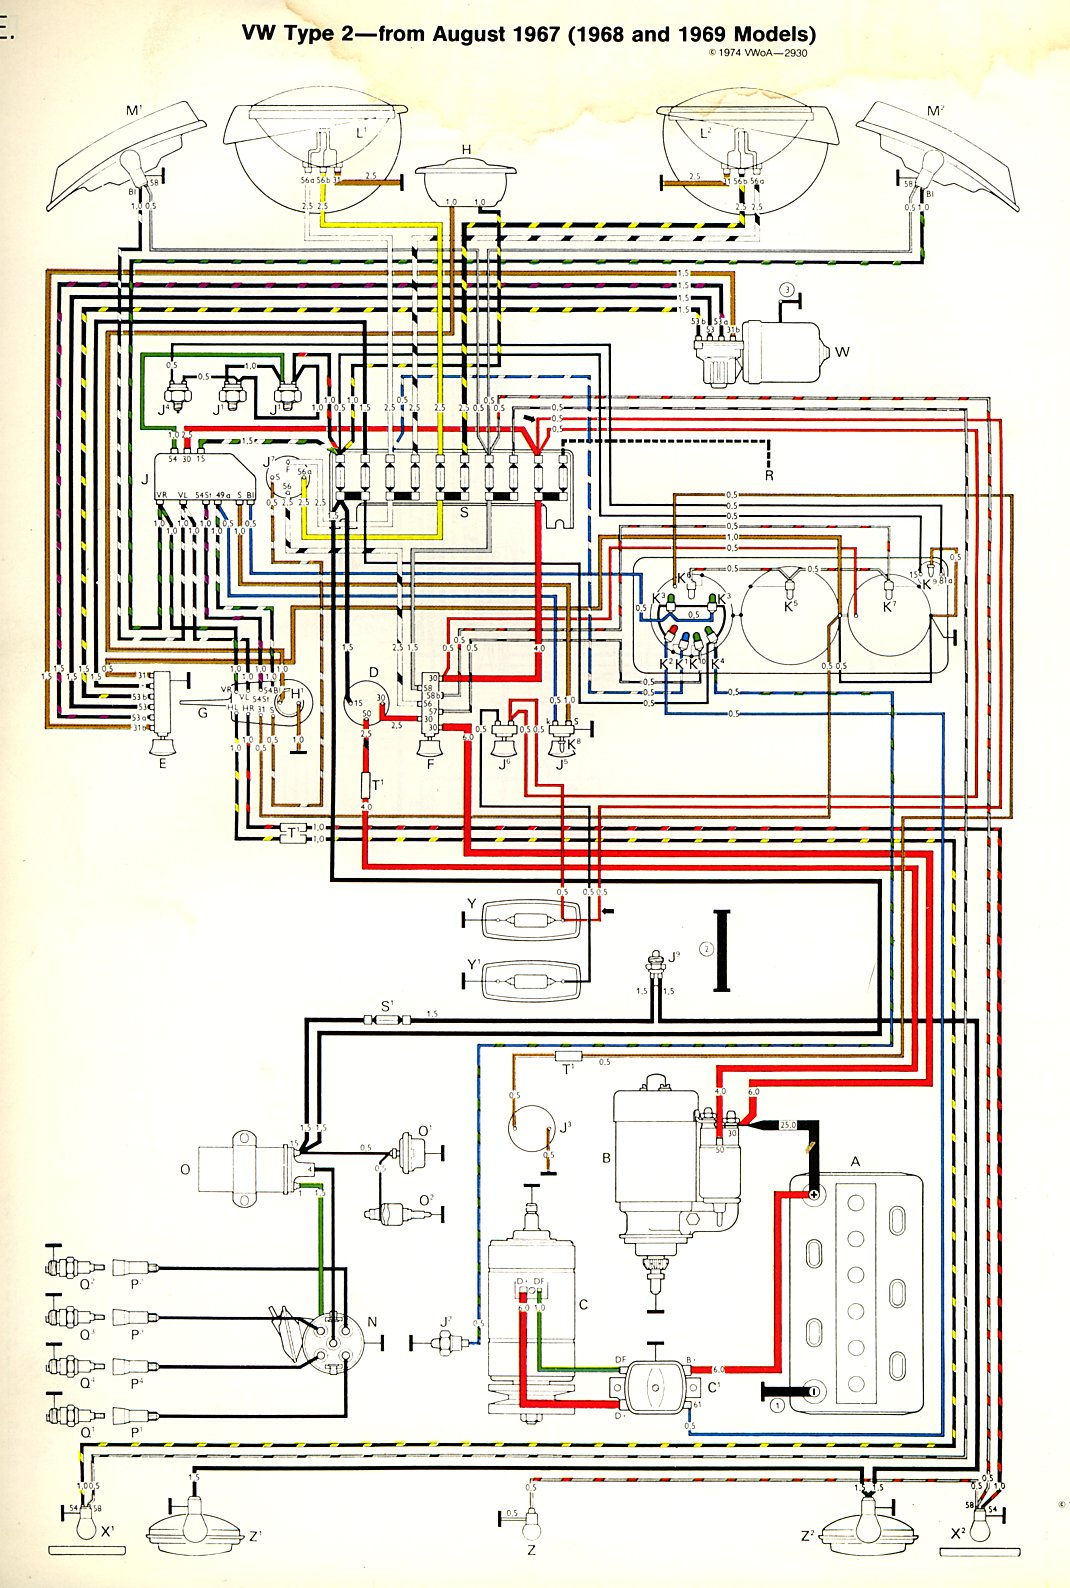 baybus_6869a thesamba com type 2 wiring diagrams vw wiring diagrams at pacquiaovsvargaslive.co